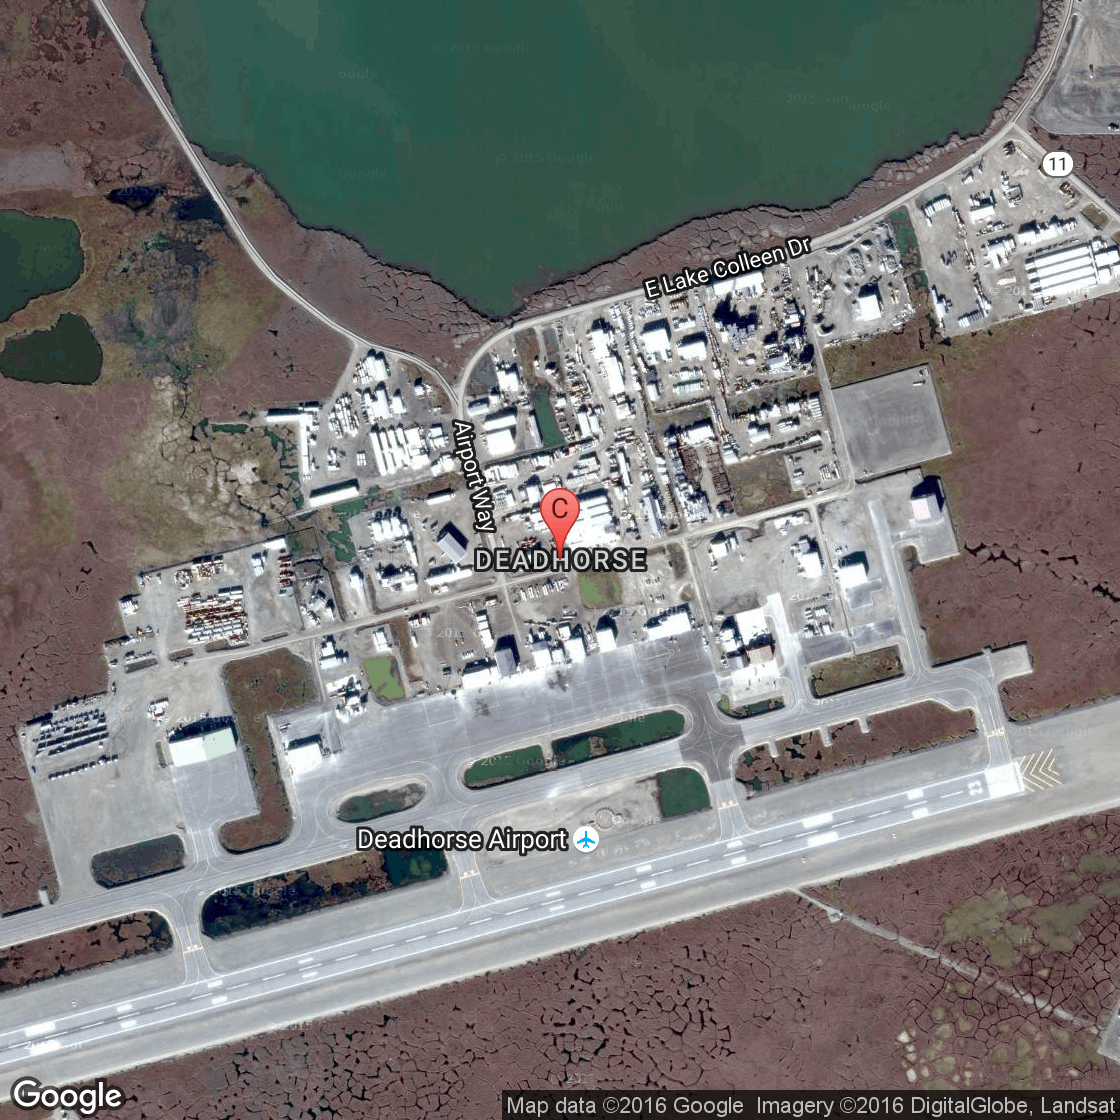 Hotels in Deadhorse   USA Today on map of old harbor ak, map of nulato ak, map of akiak ak, map of tok ak, map of wasilla ak, map of kotzebue ak, map of stebbins ak, map of shemya ak, map of adak ak, map of craig ak, map of willow ak, map of emmonak ak, map of north pole ak, map of glennallen ak, map of dillingham ak, map of juneau ak, map of false pass ak, map of ester ak, map of soldotna ak, map of ketchikan ak,